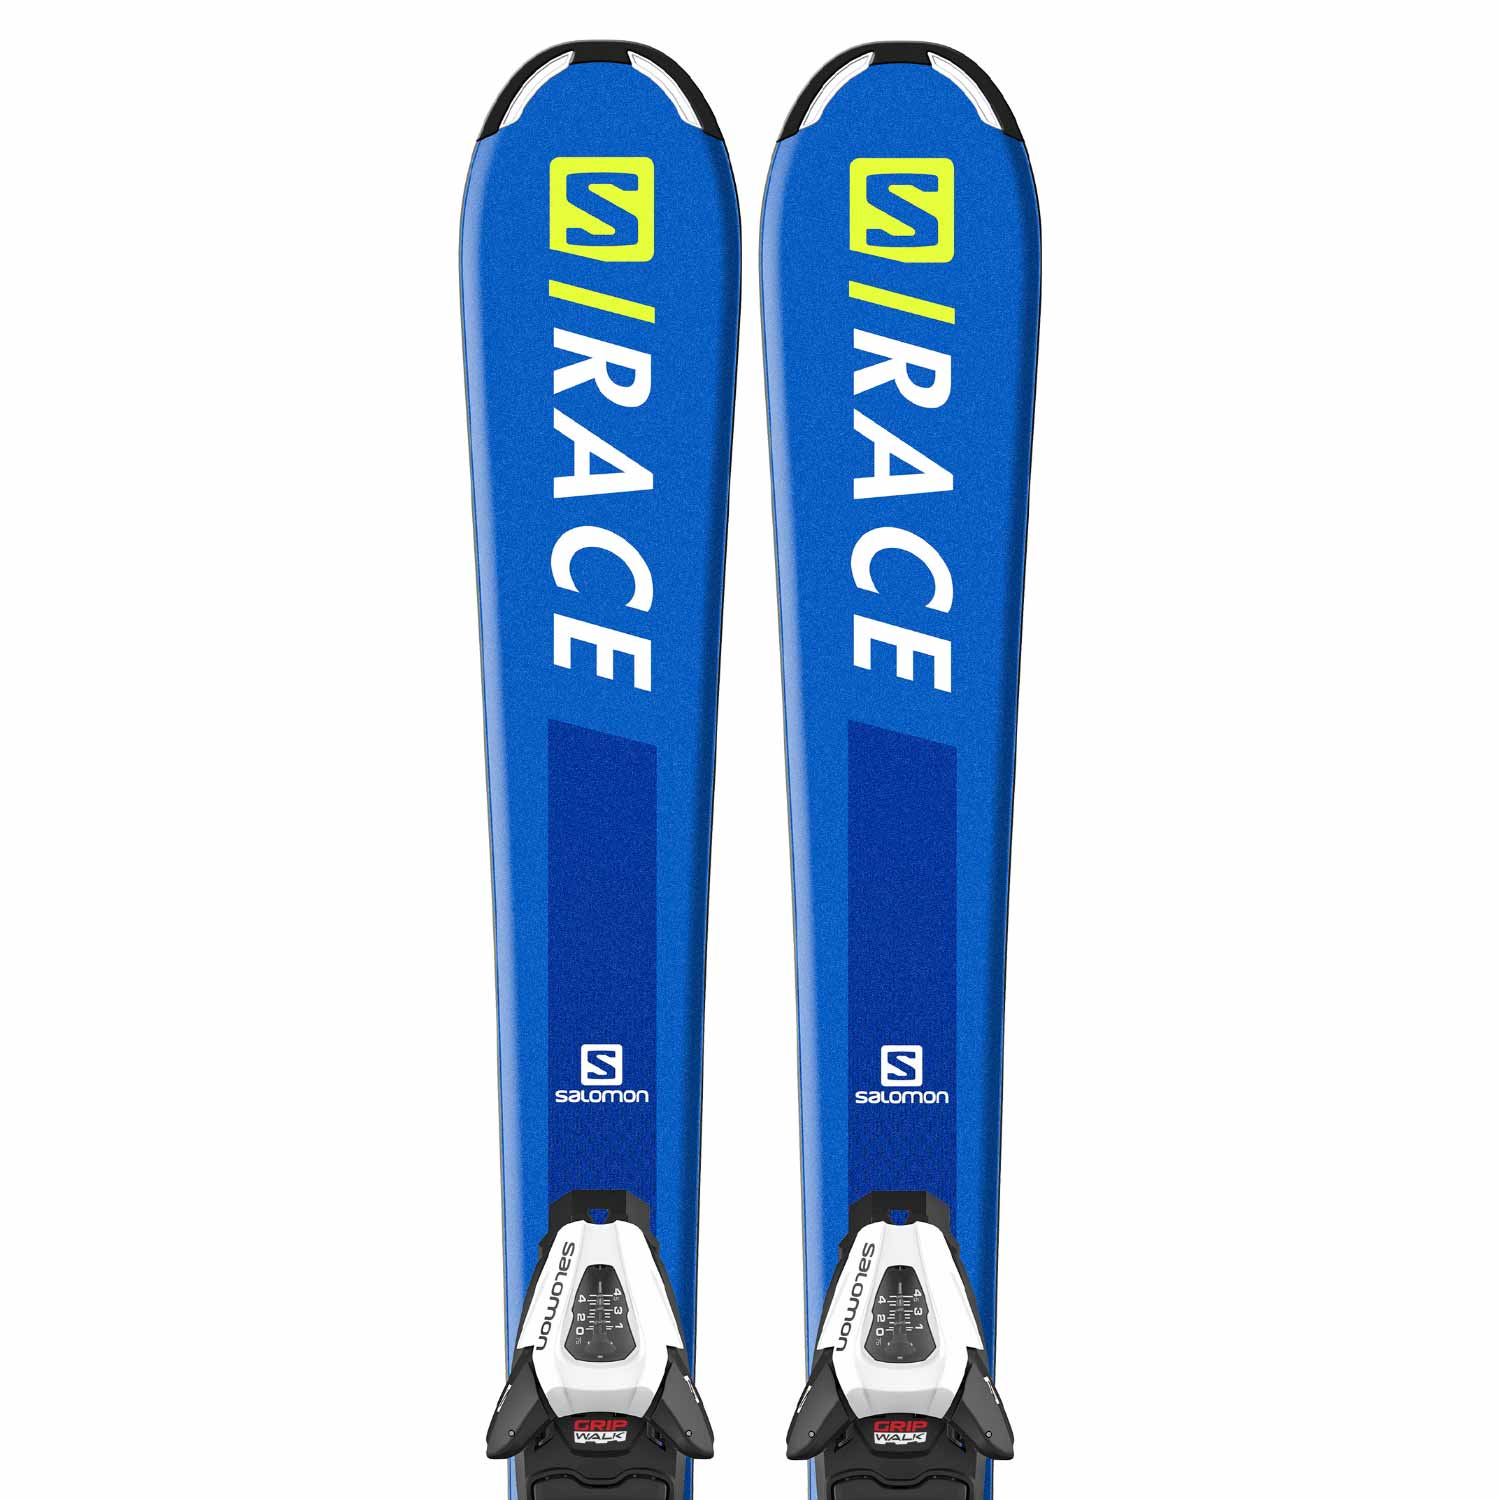 Salomon S Race Jr S Ski C5 GW Ski Binding 2020